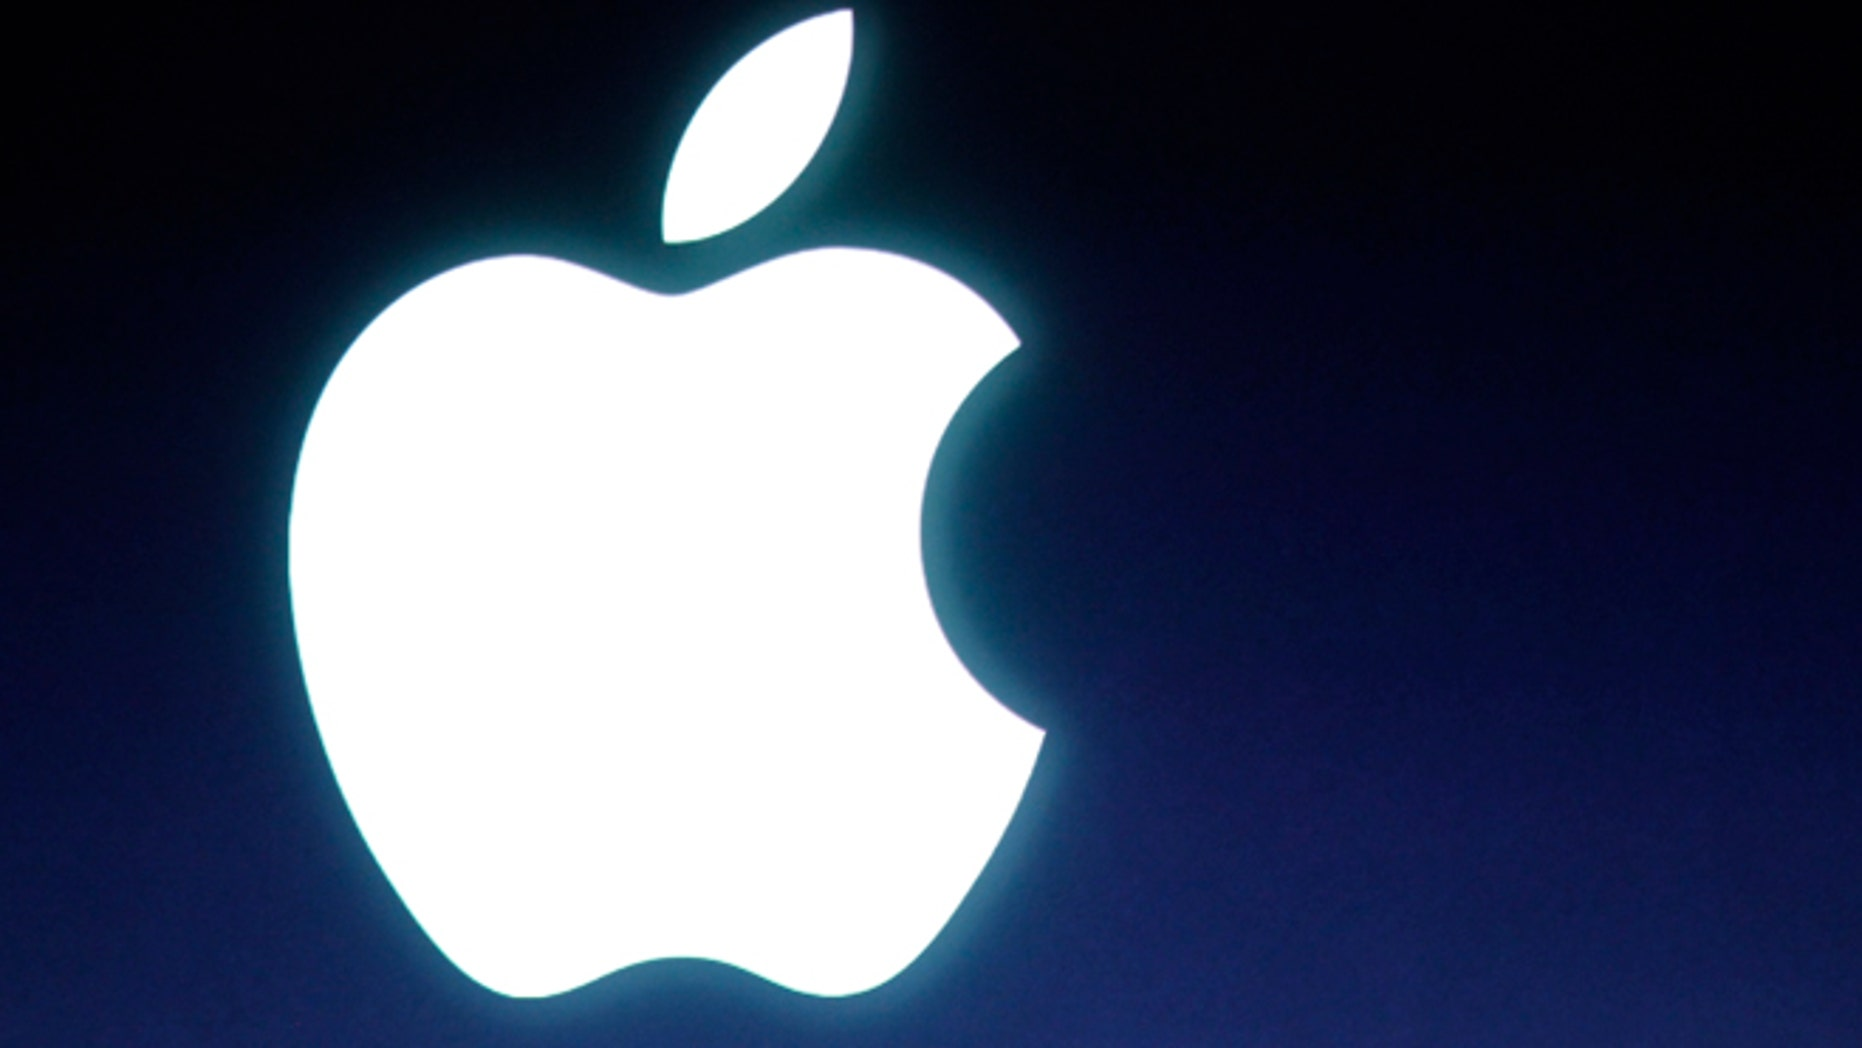 """June 20, 2013: A Justice Department lawyer urged a judge to find that Appleconspired with publishers to raise electronic book prices, while an attorney for the computer giant warned that such a finding in the civil antitrust case would set a """"dangerous precedent"""" for businesses."""